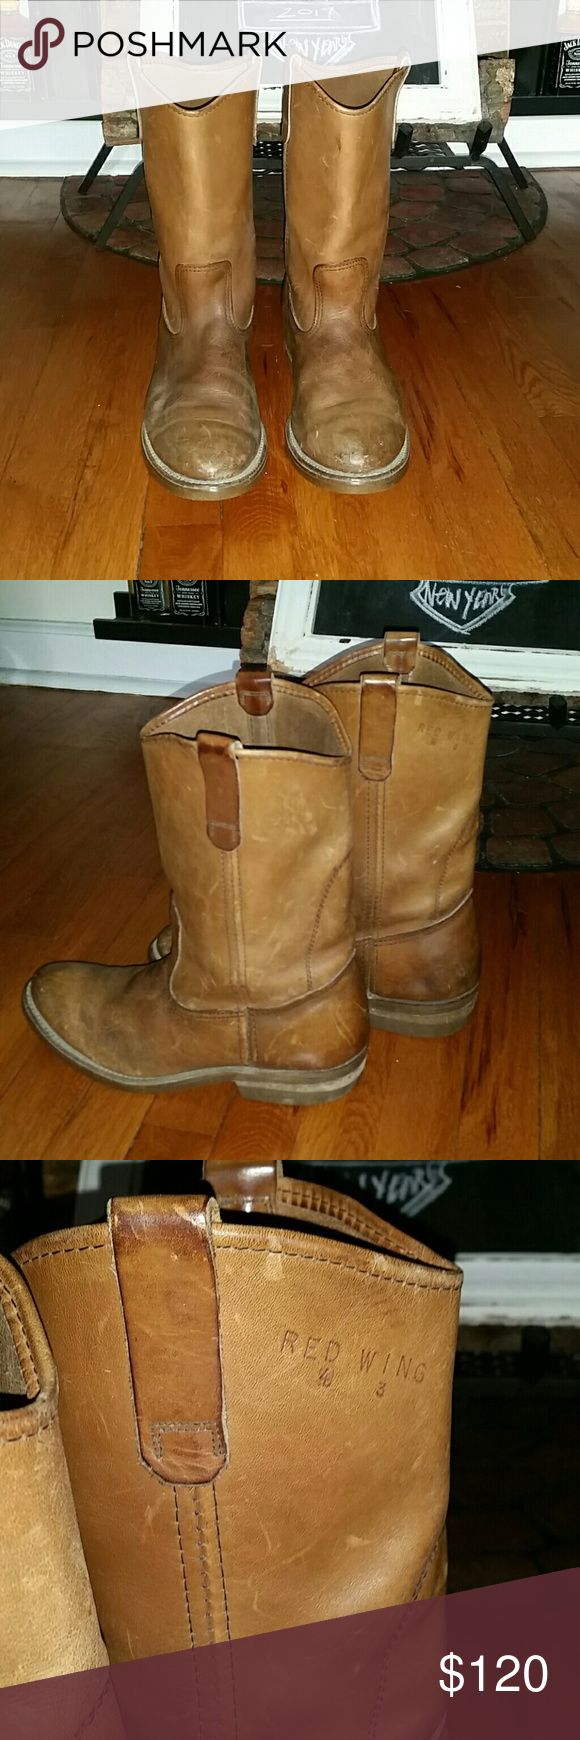 Vintage 70's RED WING PECOS USA Boots Men's 10 1/2 This is a score ! Tons of miles to keep on truckin'. Little wear on the heel, the meat of the shoe is timeless! Red Wing Shoes Shoes Boots